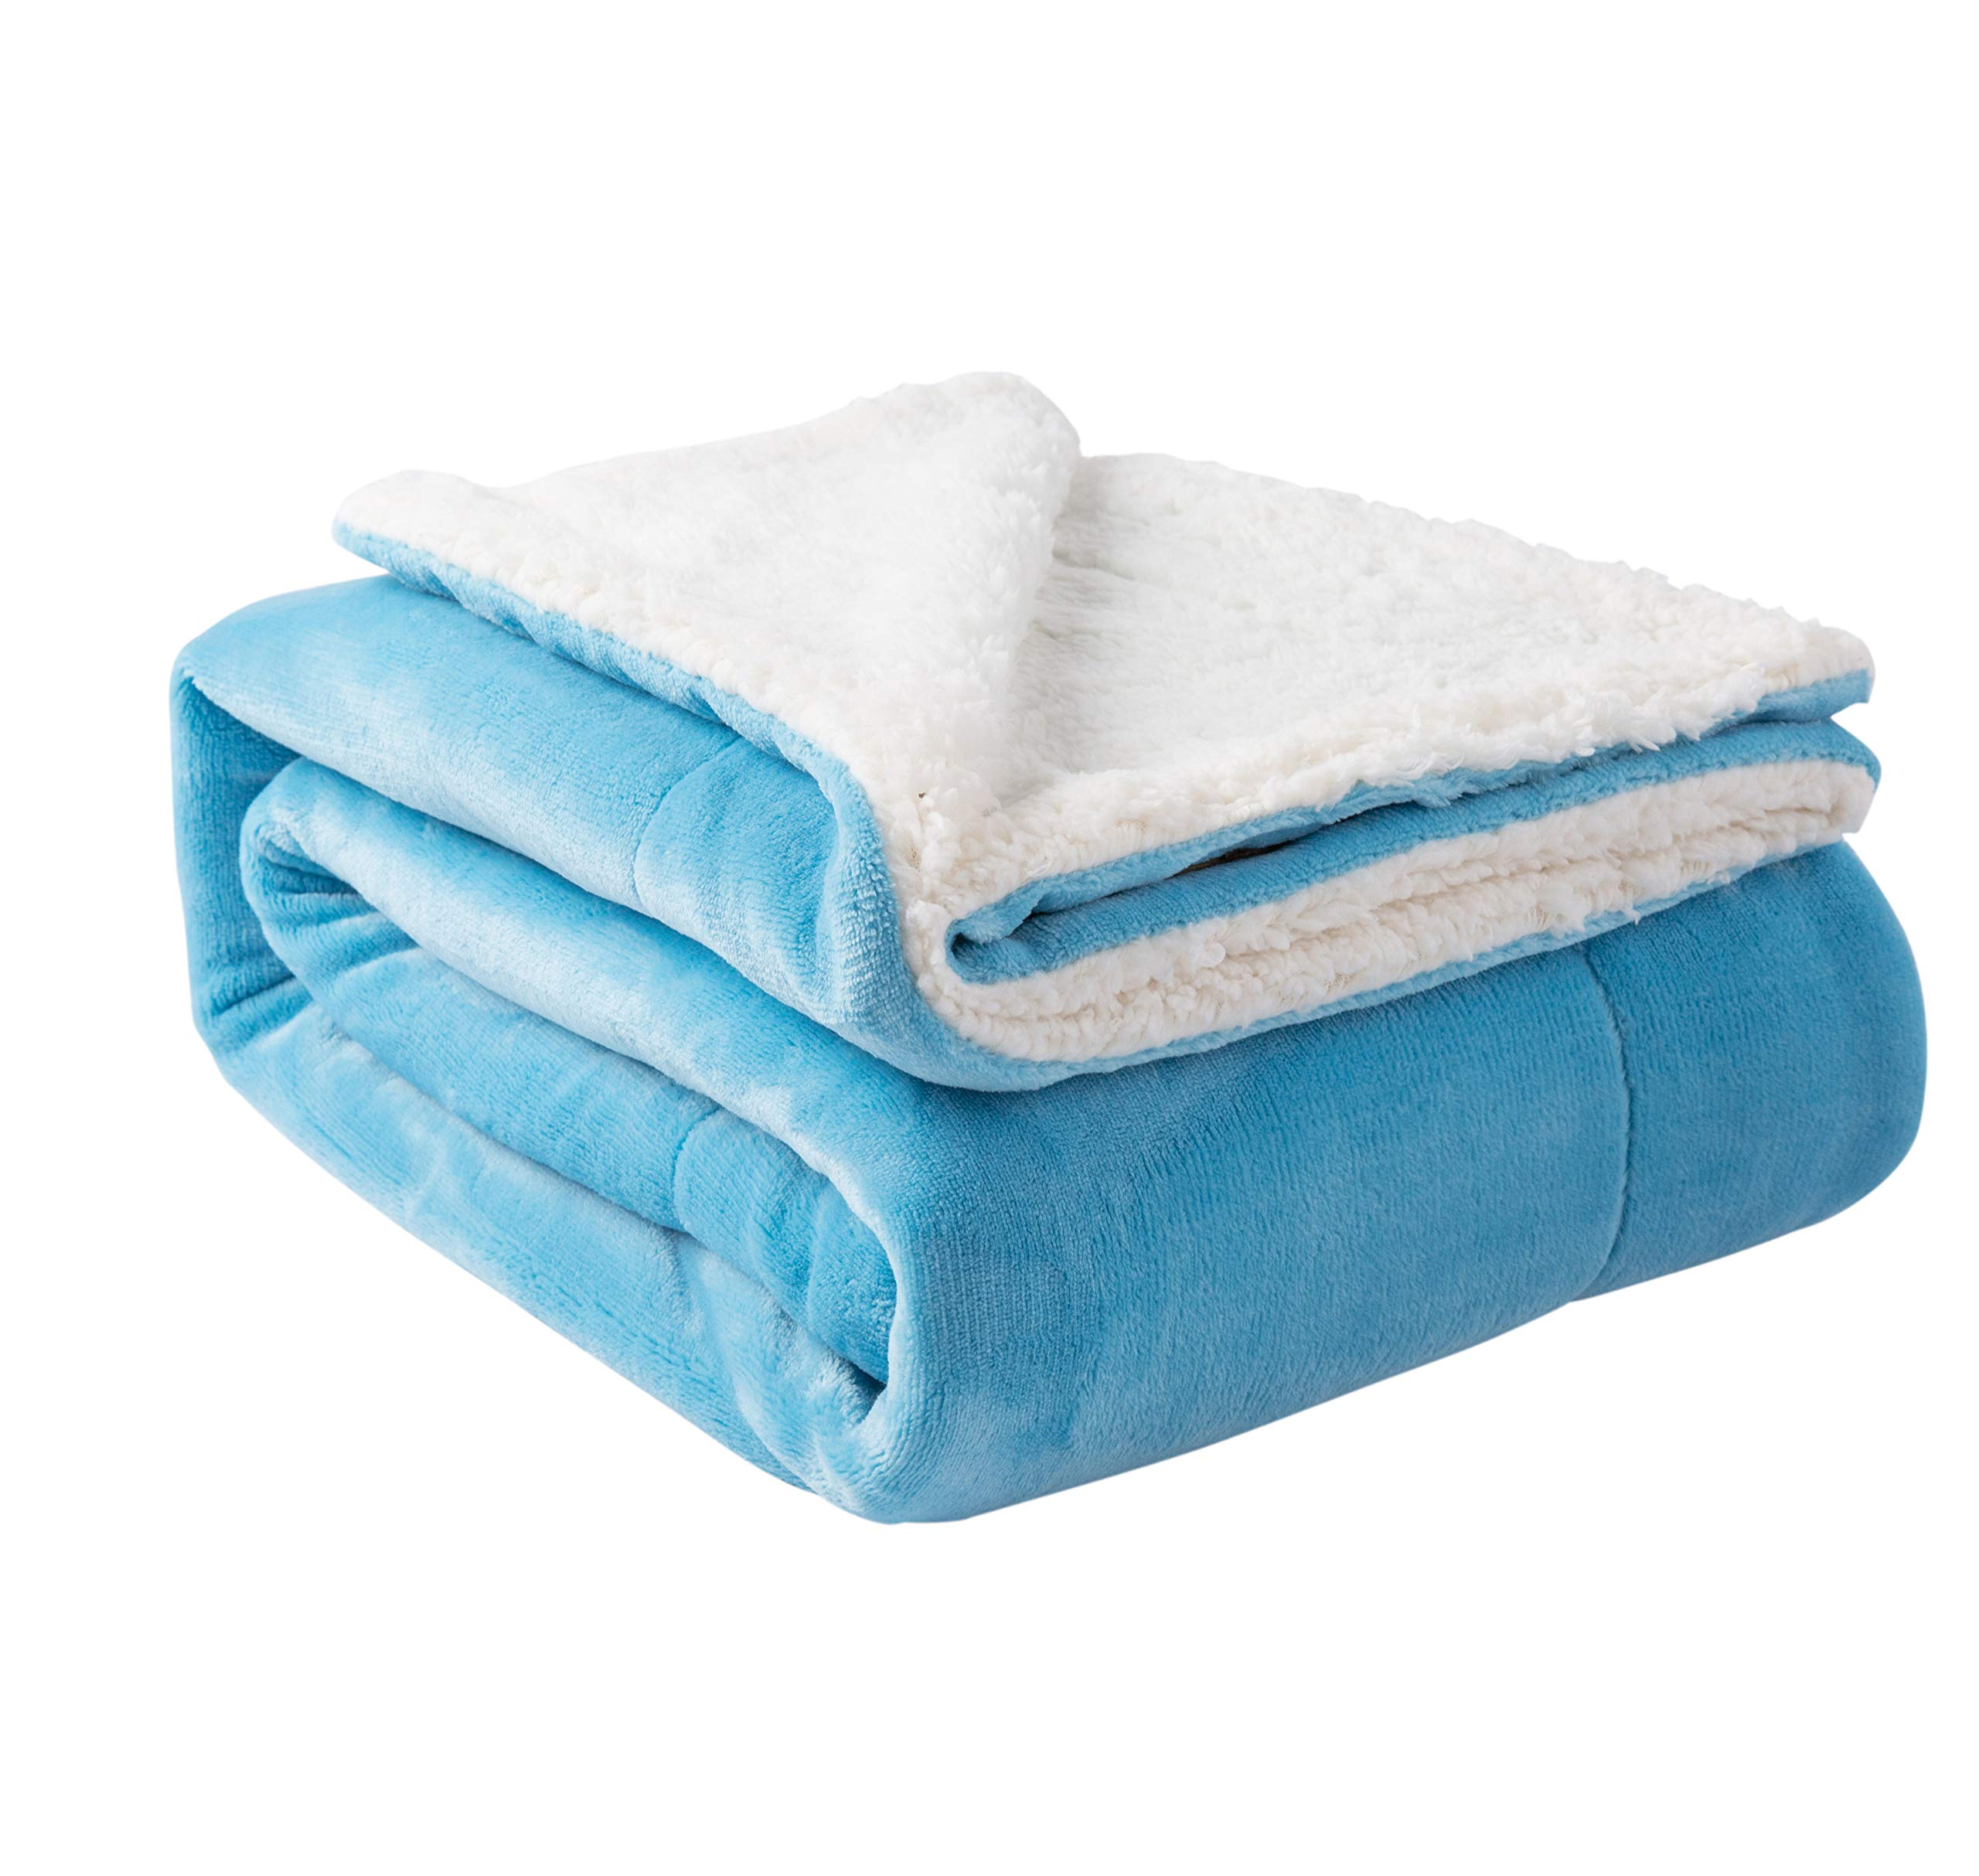 All Season Sherpa Throw Skyblue Twin 60''x80'' Reversible Fuzzy Soft Blanket for Bed or Couch